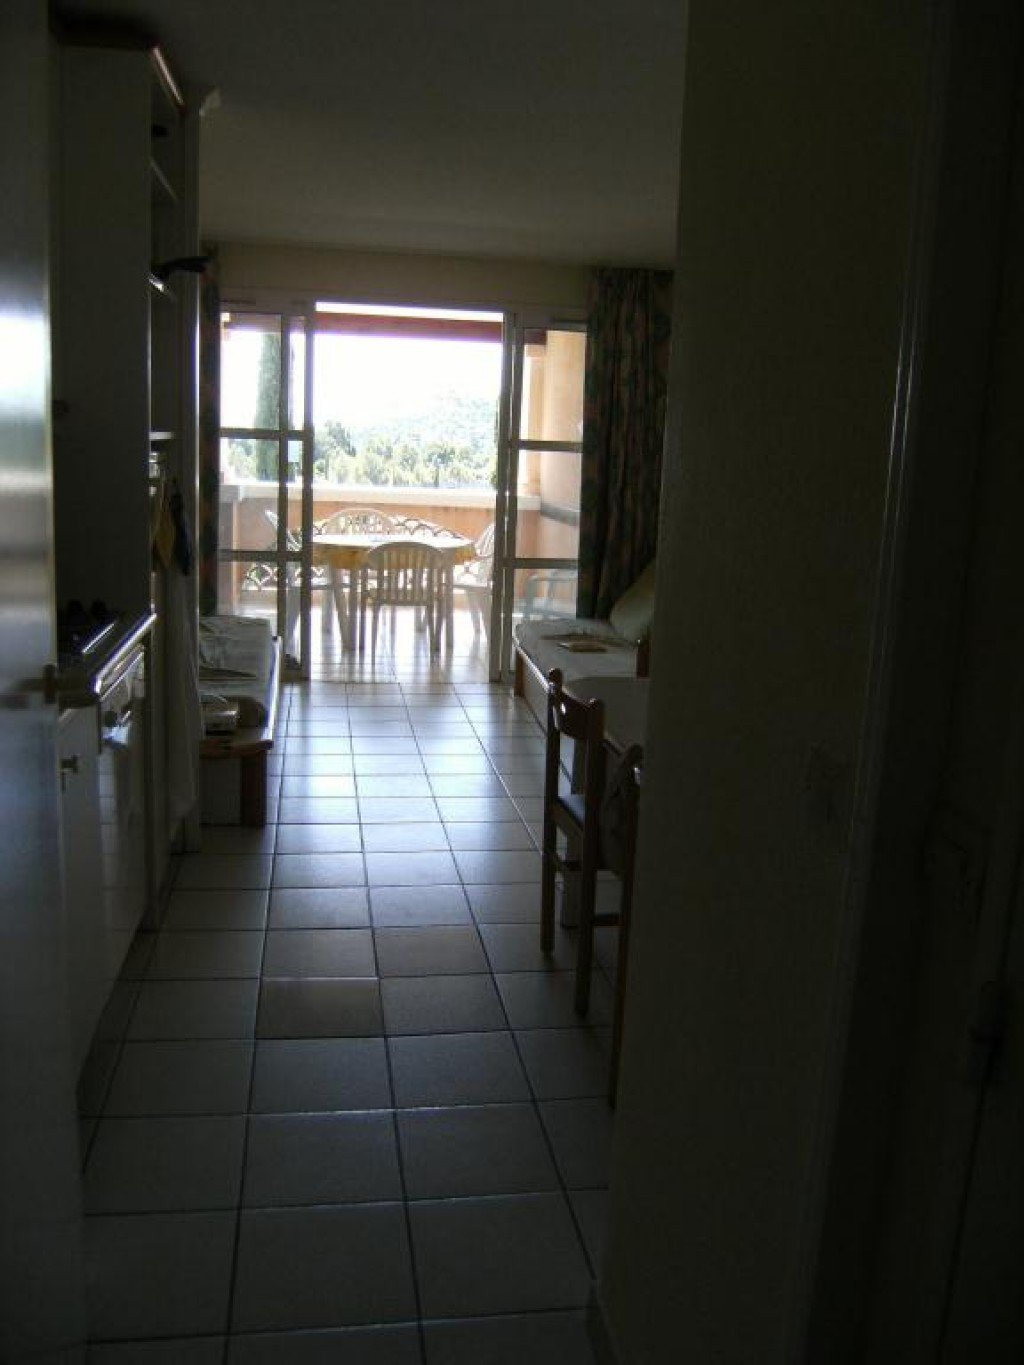 Apartment Stage 1, General condition Good, Kitchen Kitchenette, Heating Separate electric, Hot water ...